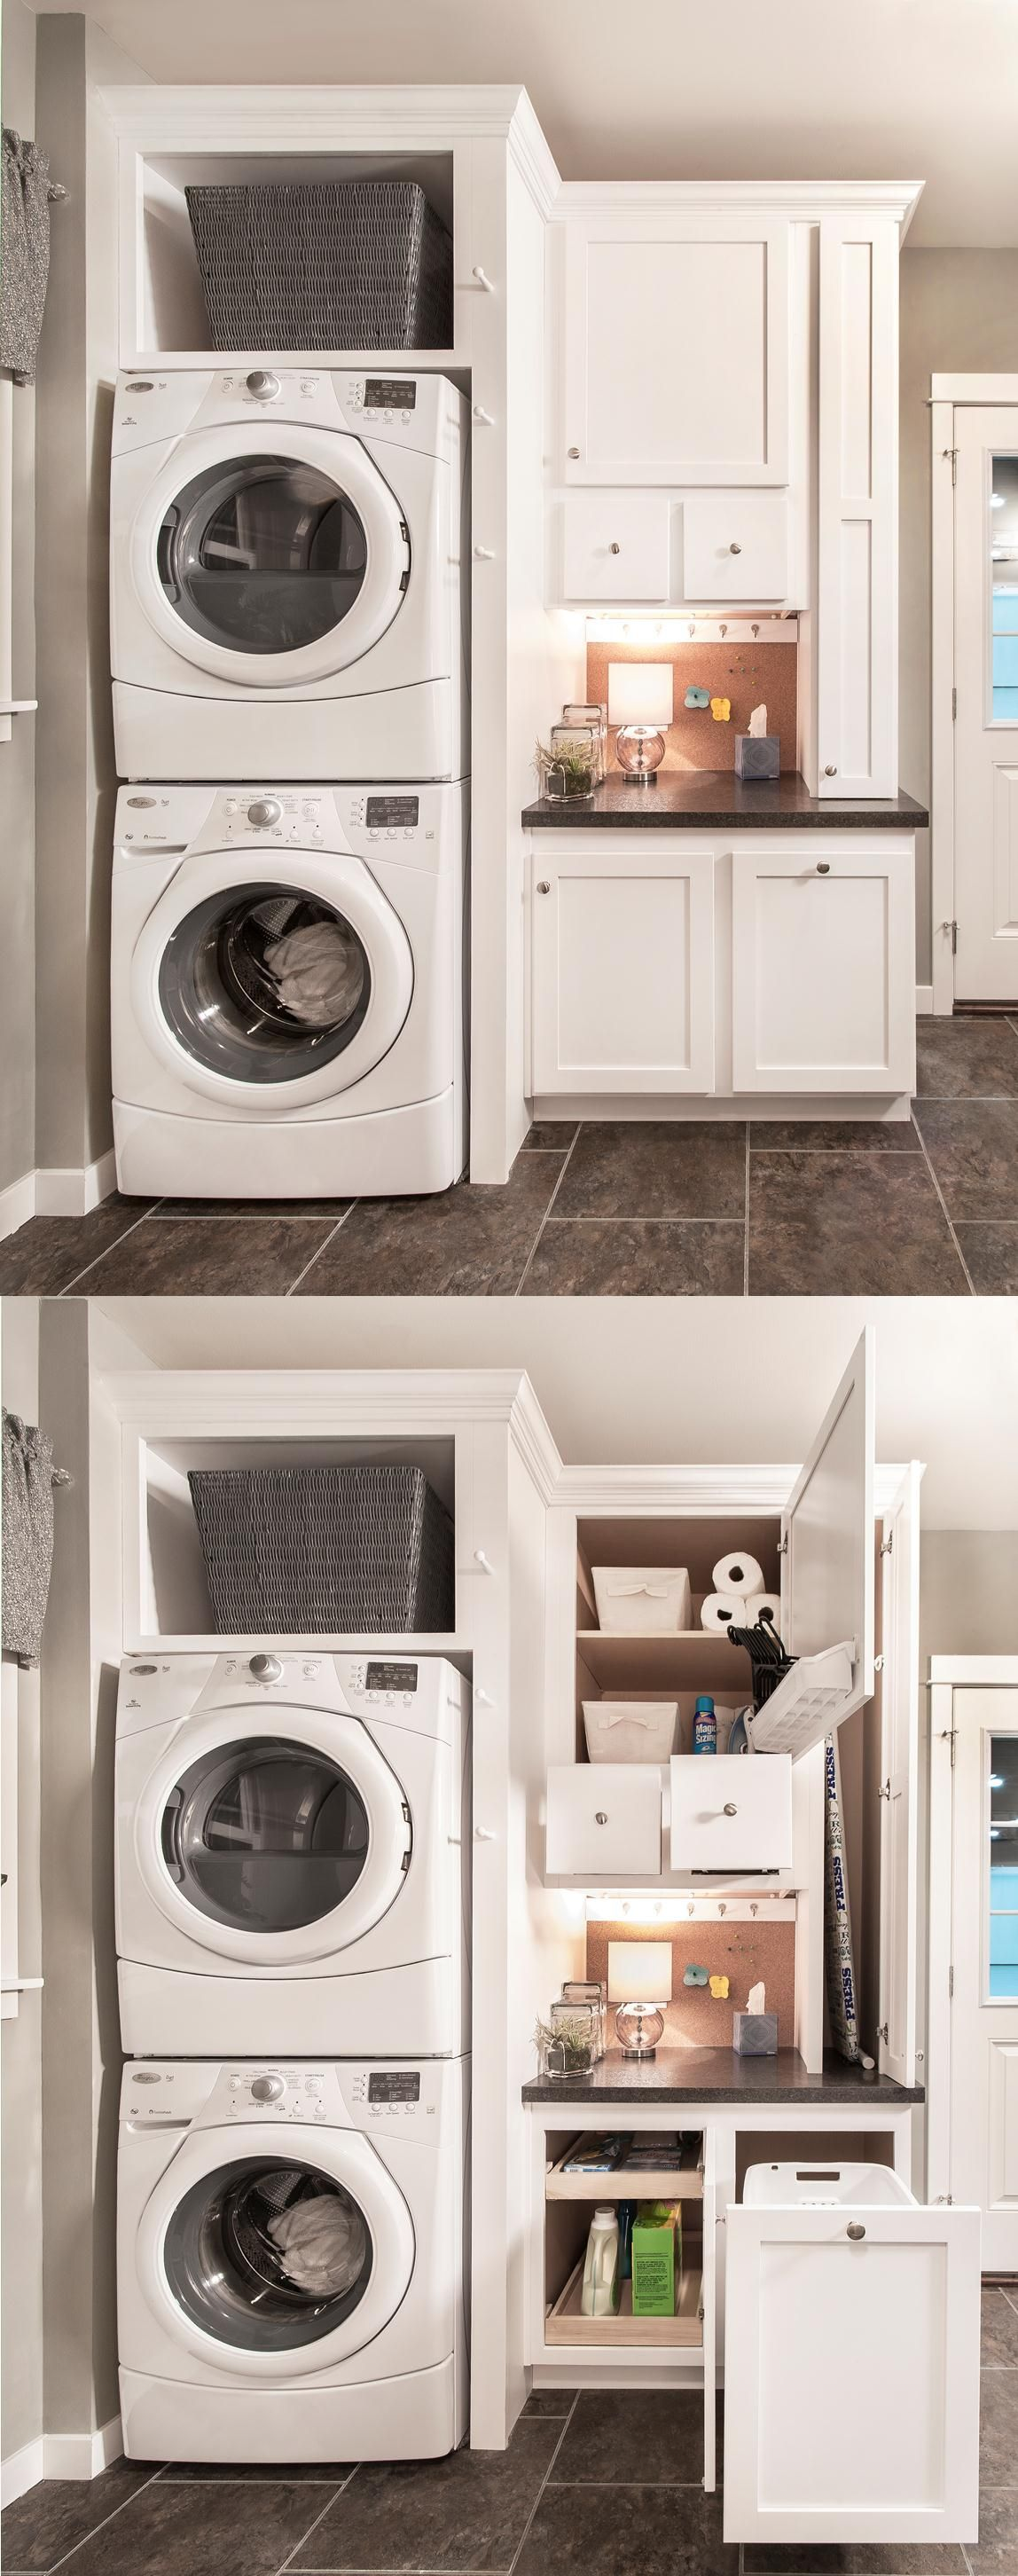 6 Utility Room Package In Glacier White With Stacked